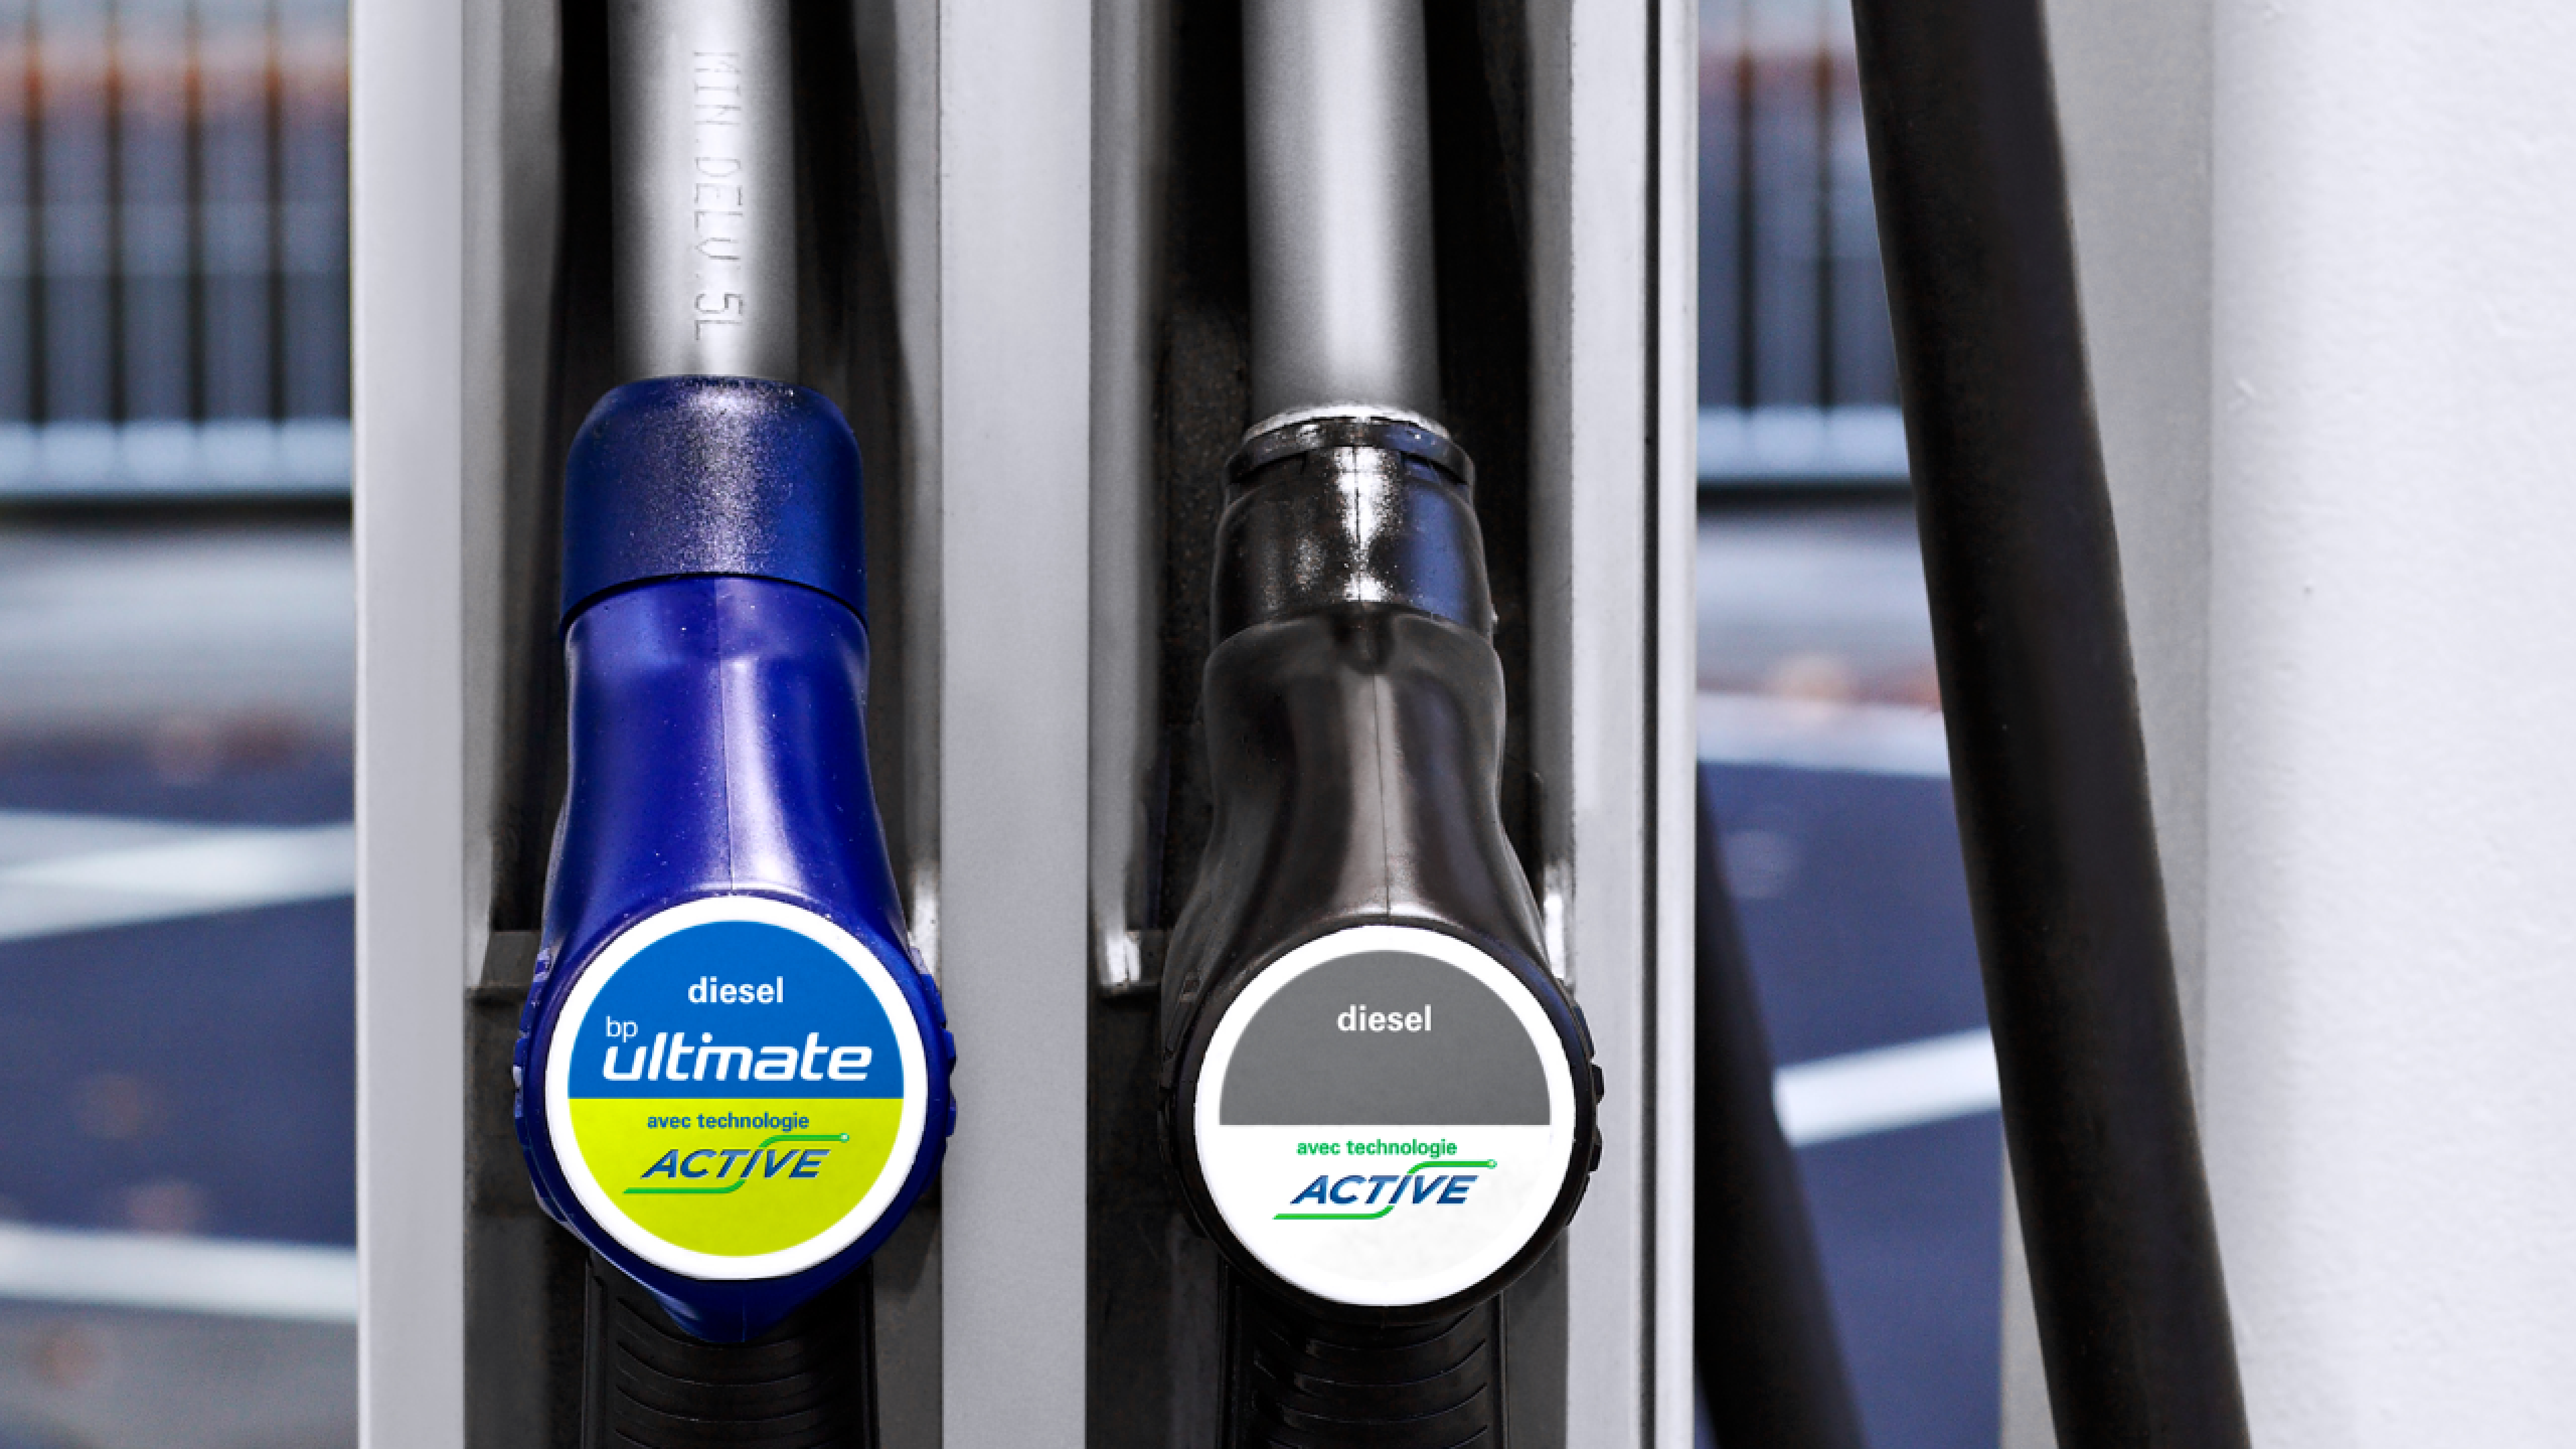 Carburants BP Gasoils avec technologie ACTIVE